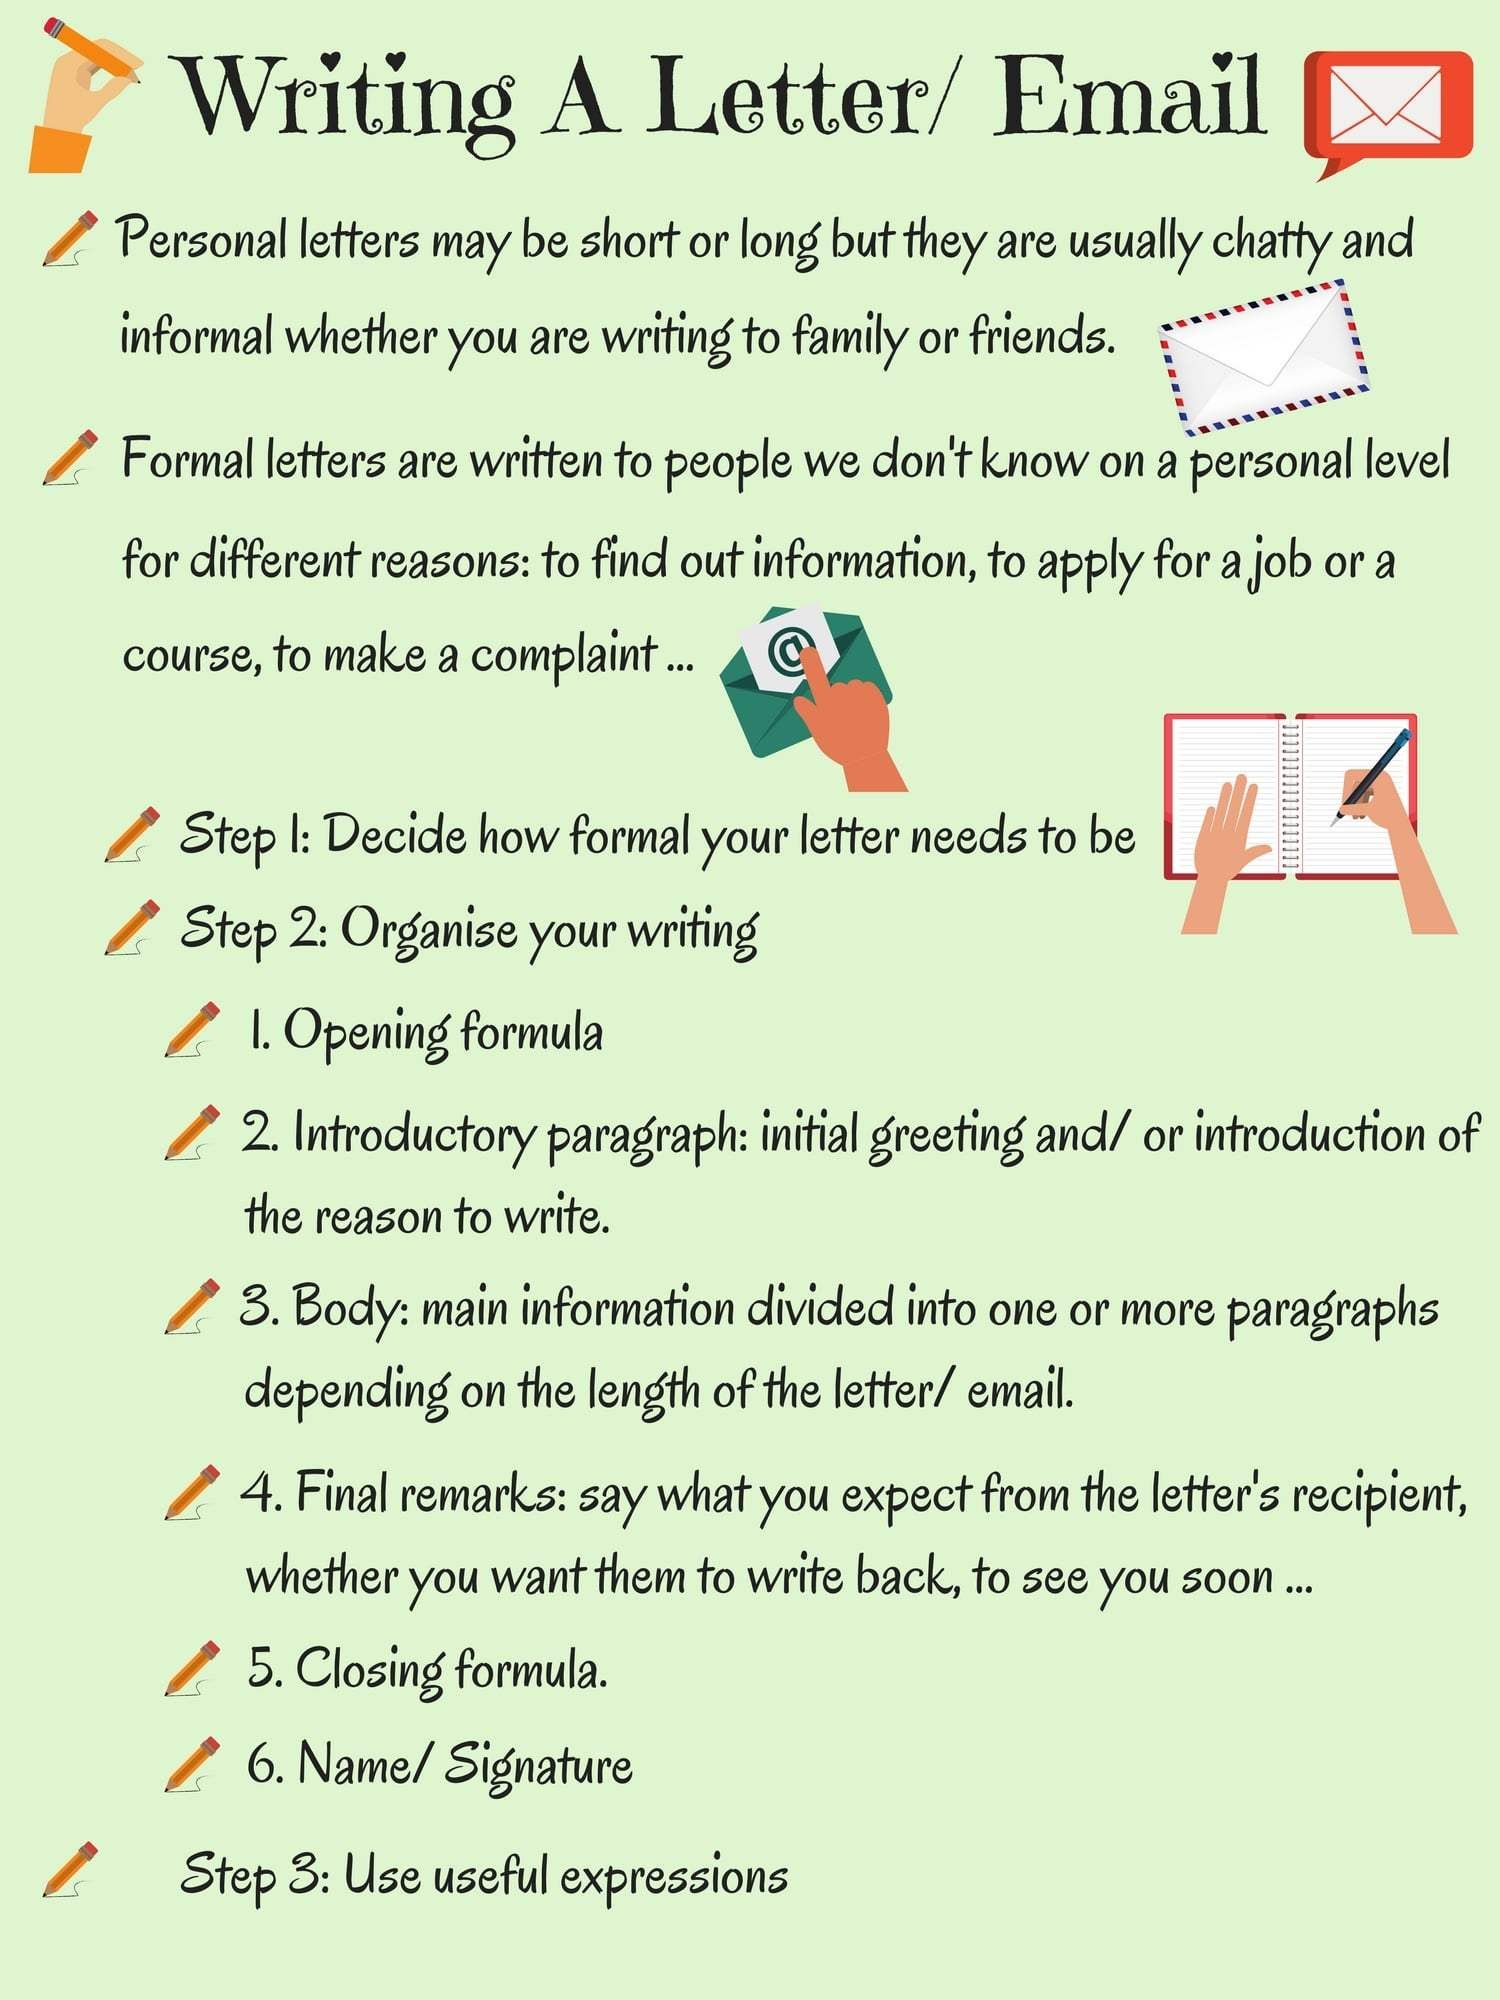 Informal Vs Formal English Writing A Letter Or Email 1 2